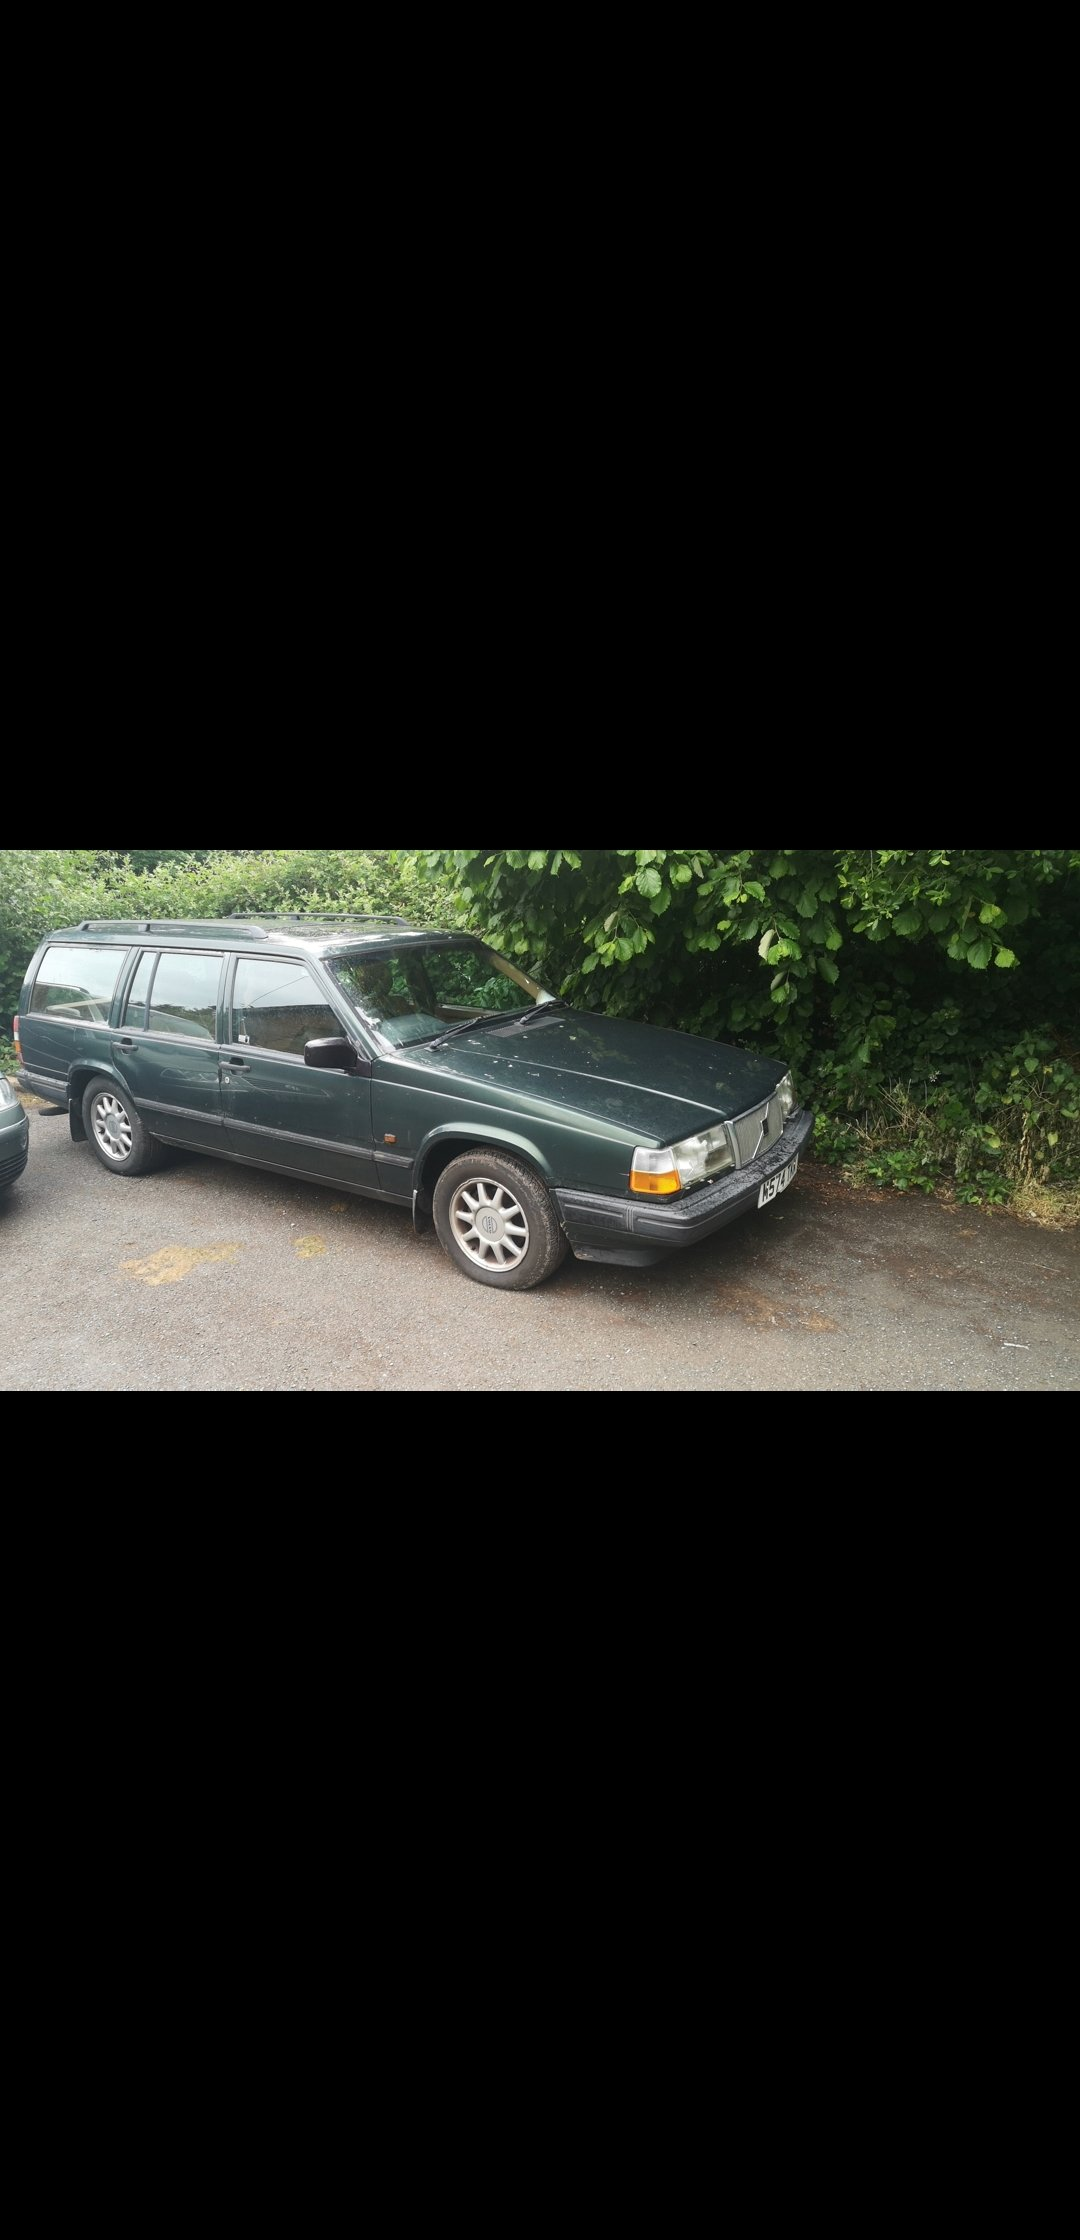 1995 volvo 940 turbo running project For Sale (picture 1 of 4)